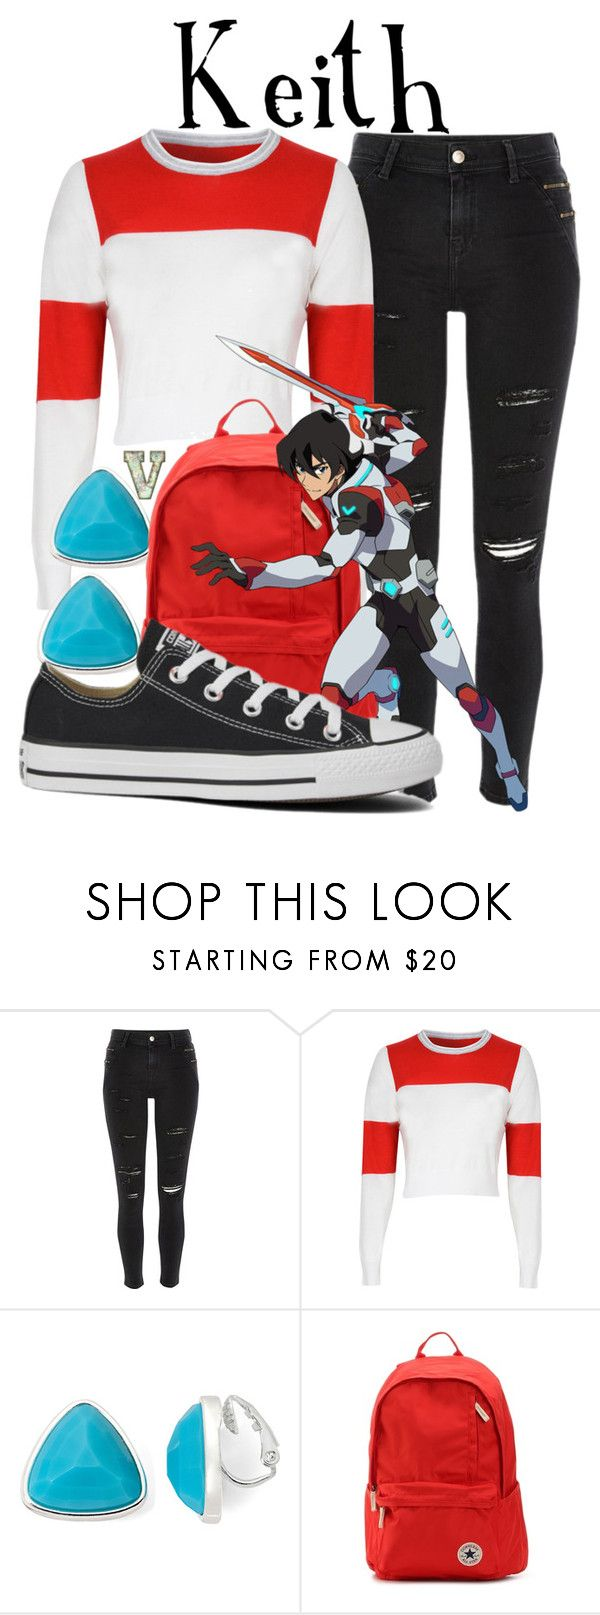 """Keith Kogane (Voltron: Legendary Defender)"" by fabfandoms ❤ liked on Polyvore featuring River Island, Glamorous, Liz Claiborne and Converse"